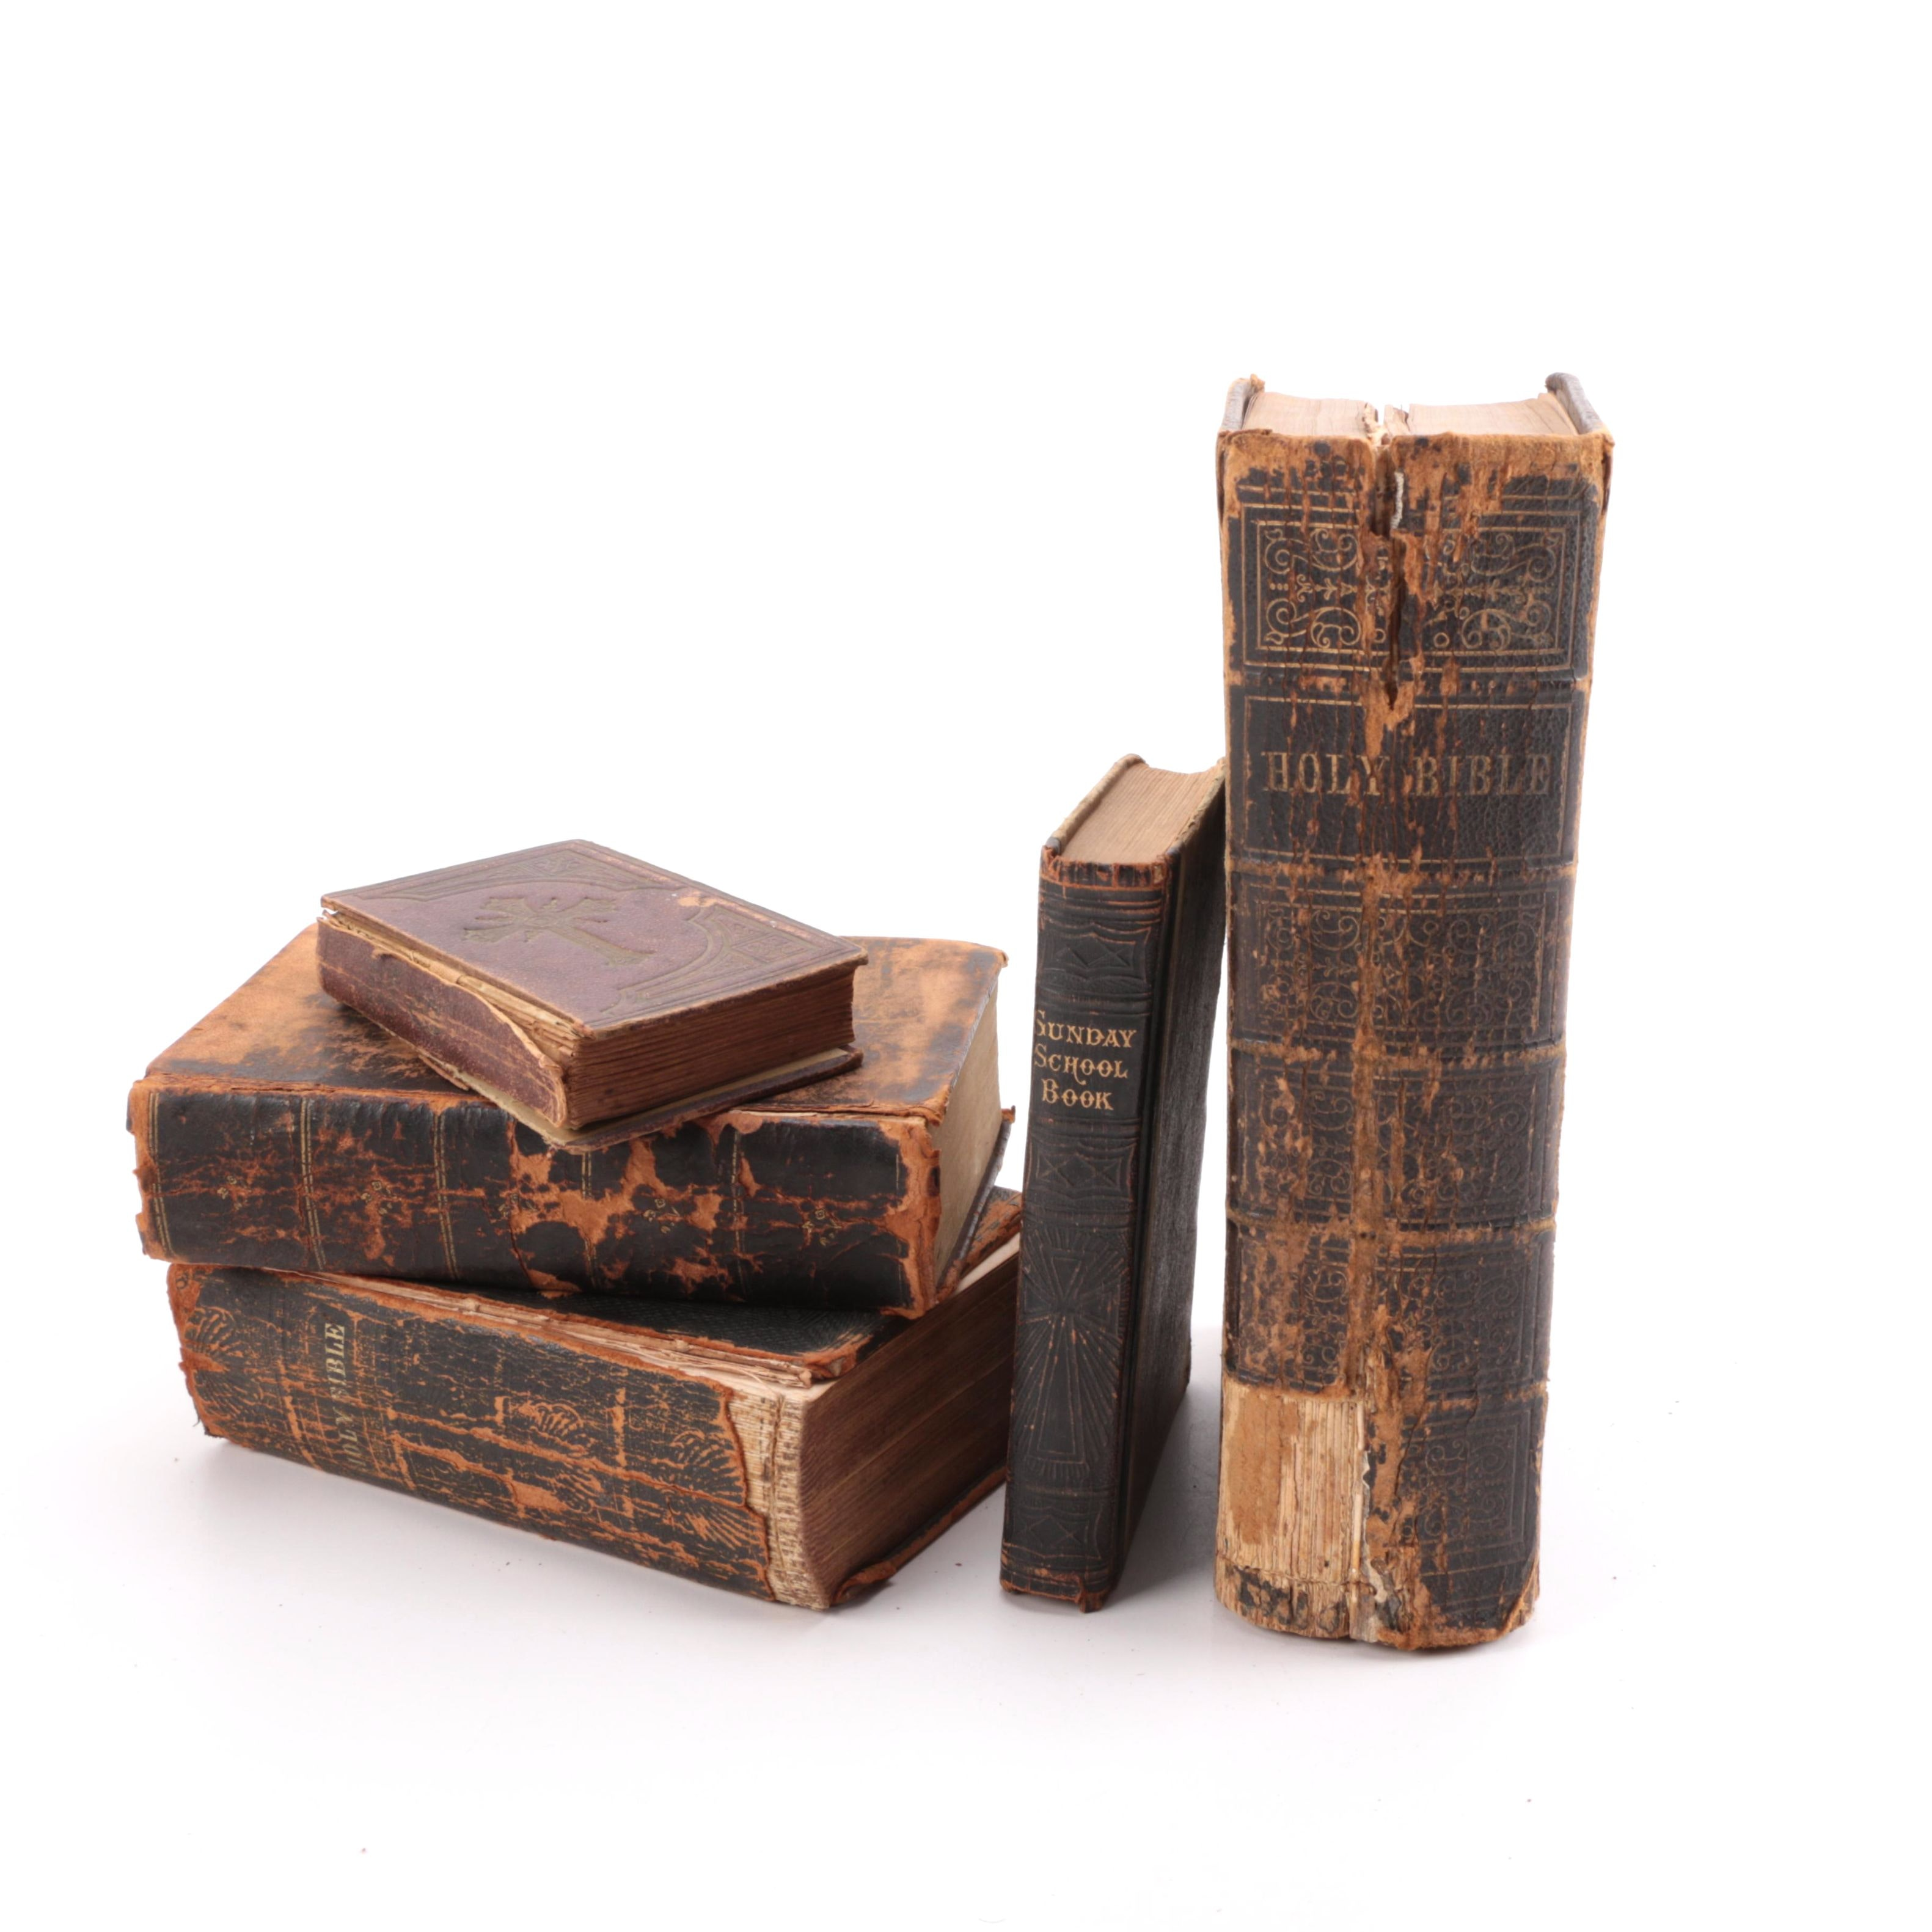 Antique Bibles and Religious Text